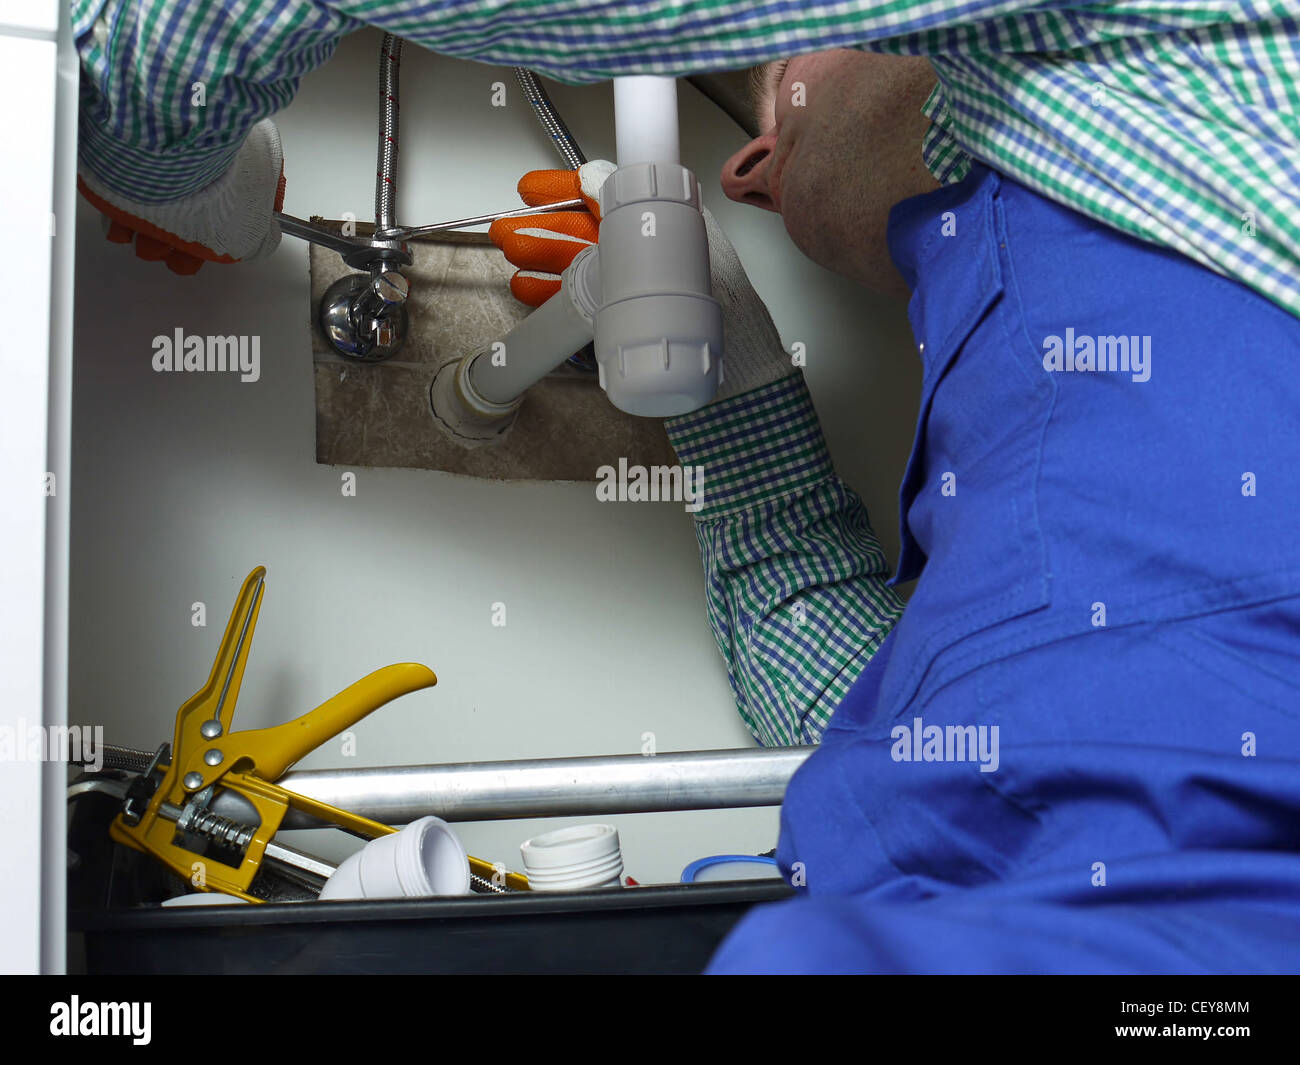 Plumber installing cold and hot water fixtures to bathroom washbasin - Stock Image